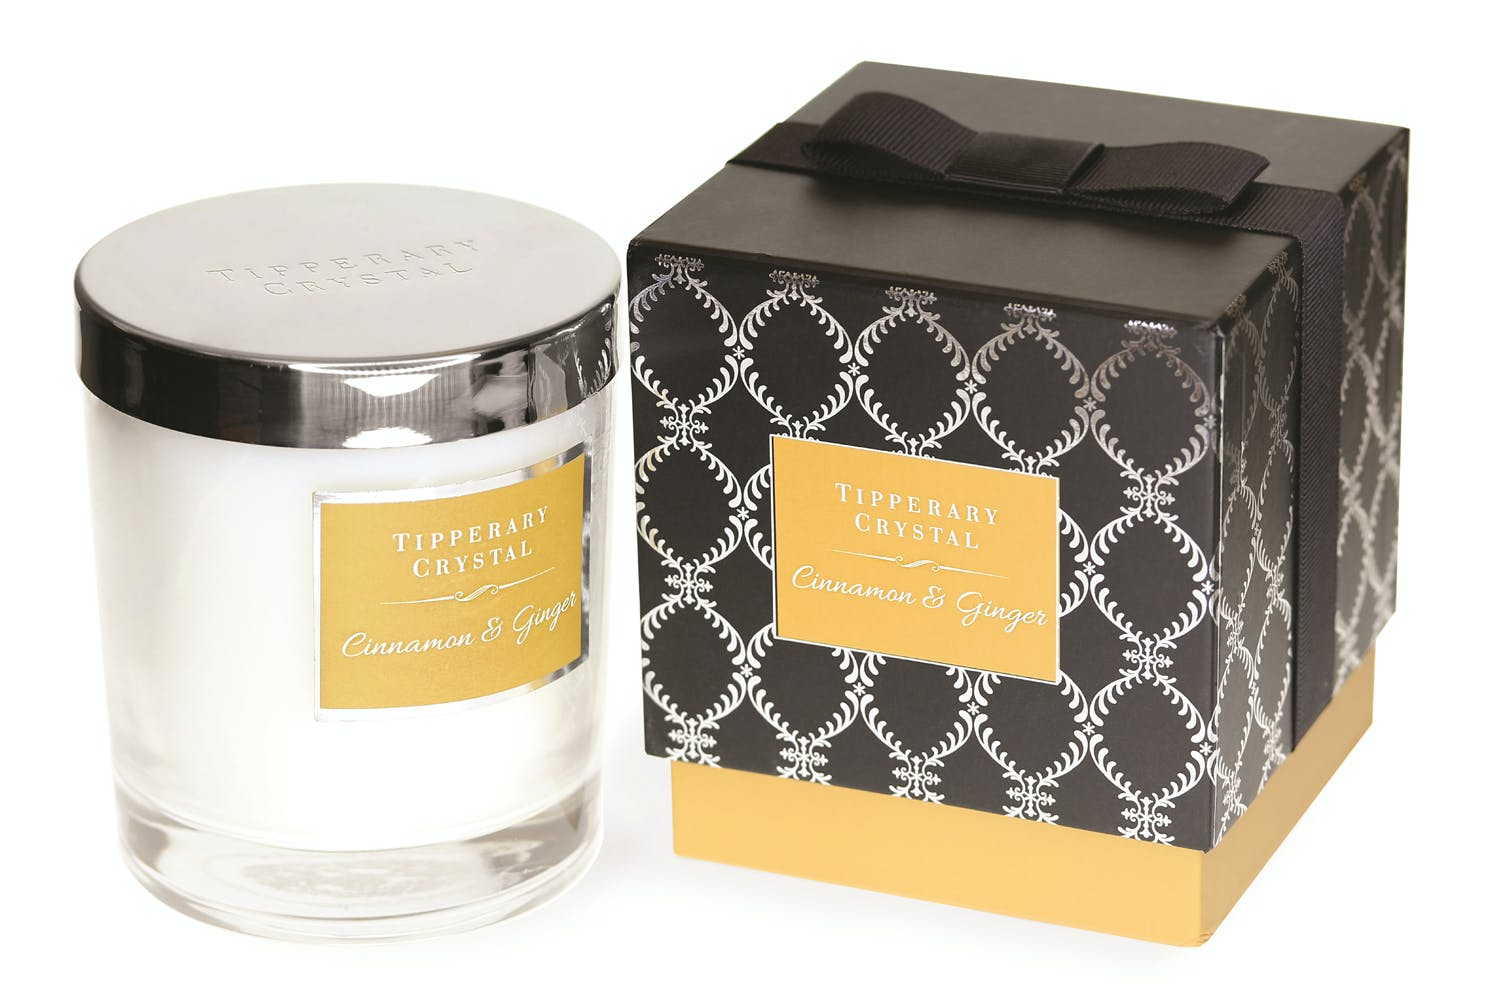 Tipperary Crystal Luxury Candle | Cinnamon & Ginger